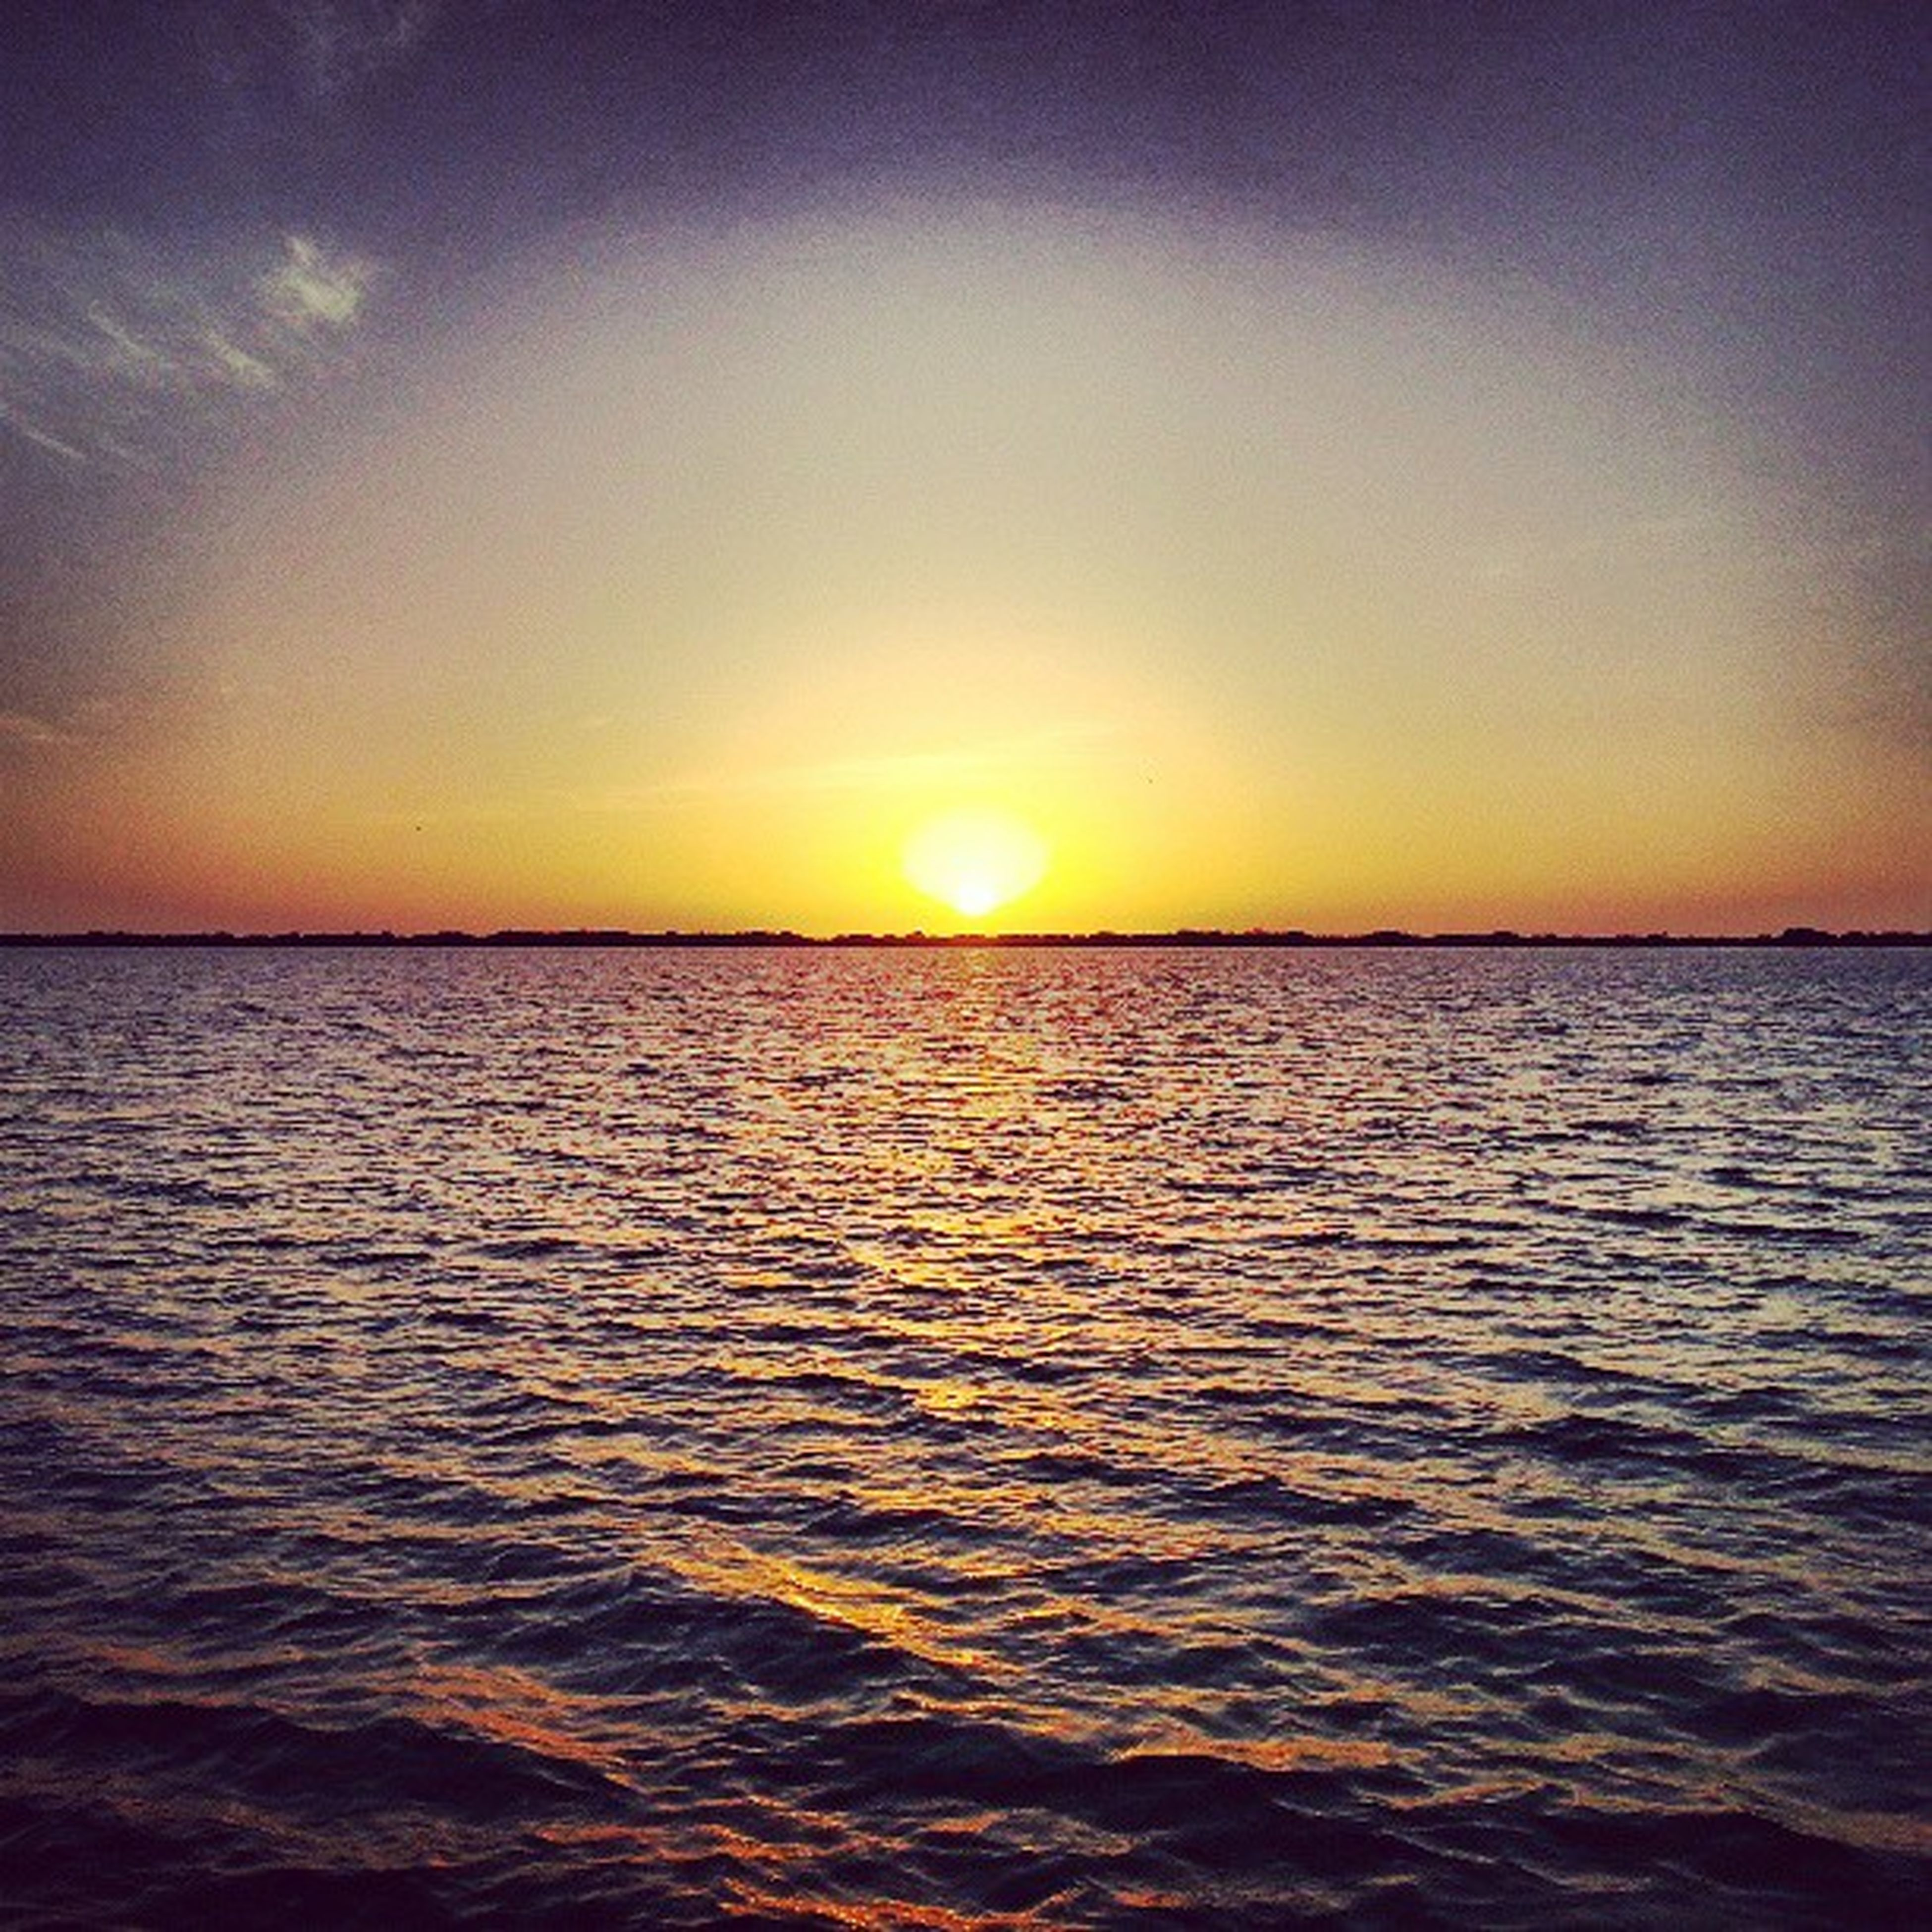 sunset, water, sea, sun, scenics, tranquil scene, beauty in nature, tranquility, waterfront, orange color, rippled, sky, idyllic, horizon over water, reflection, nature, sunlight, outdoors, seascape, no people